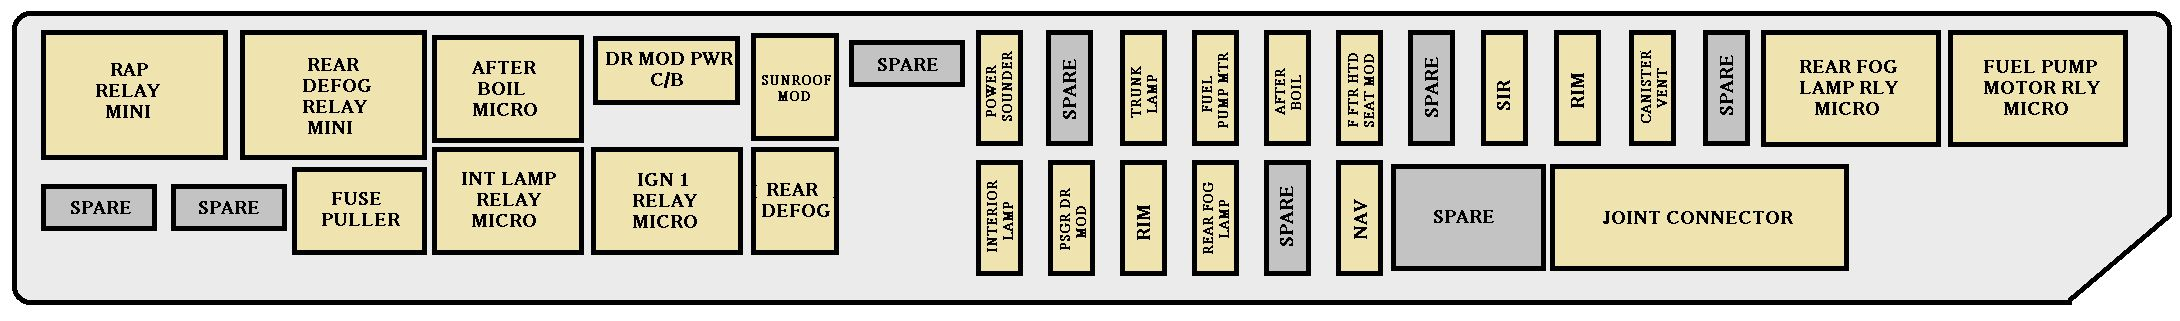 Cadillac CTS (2003) - fuse box diagram - Auto Genius | 2004 Cadillac Cts Fuse Box Diagram |  | Auto Genius